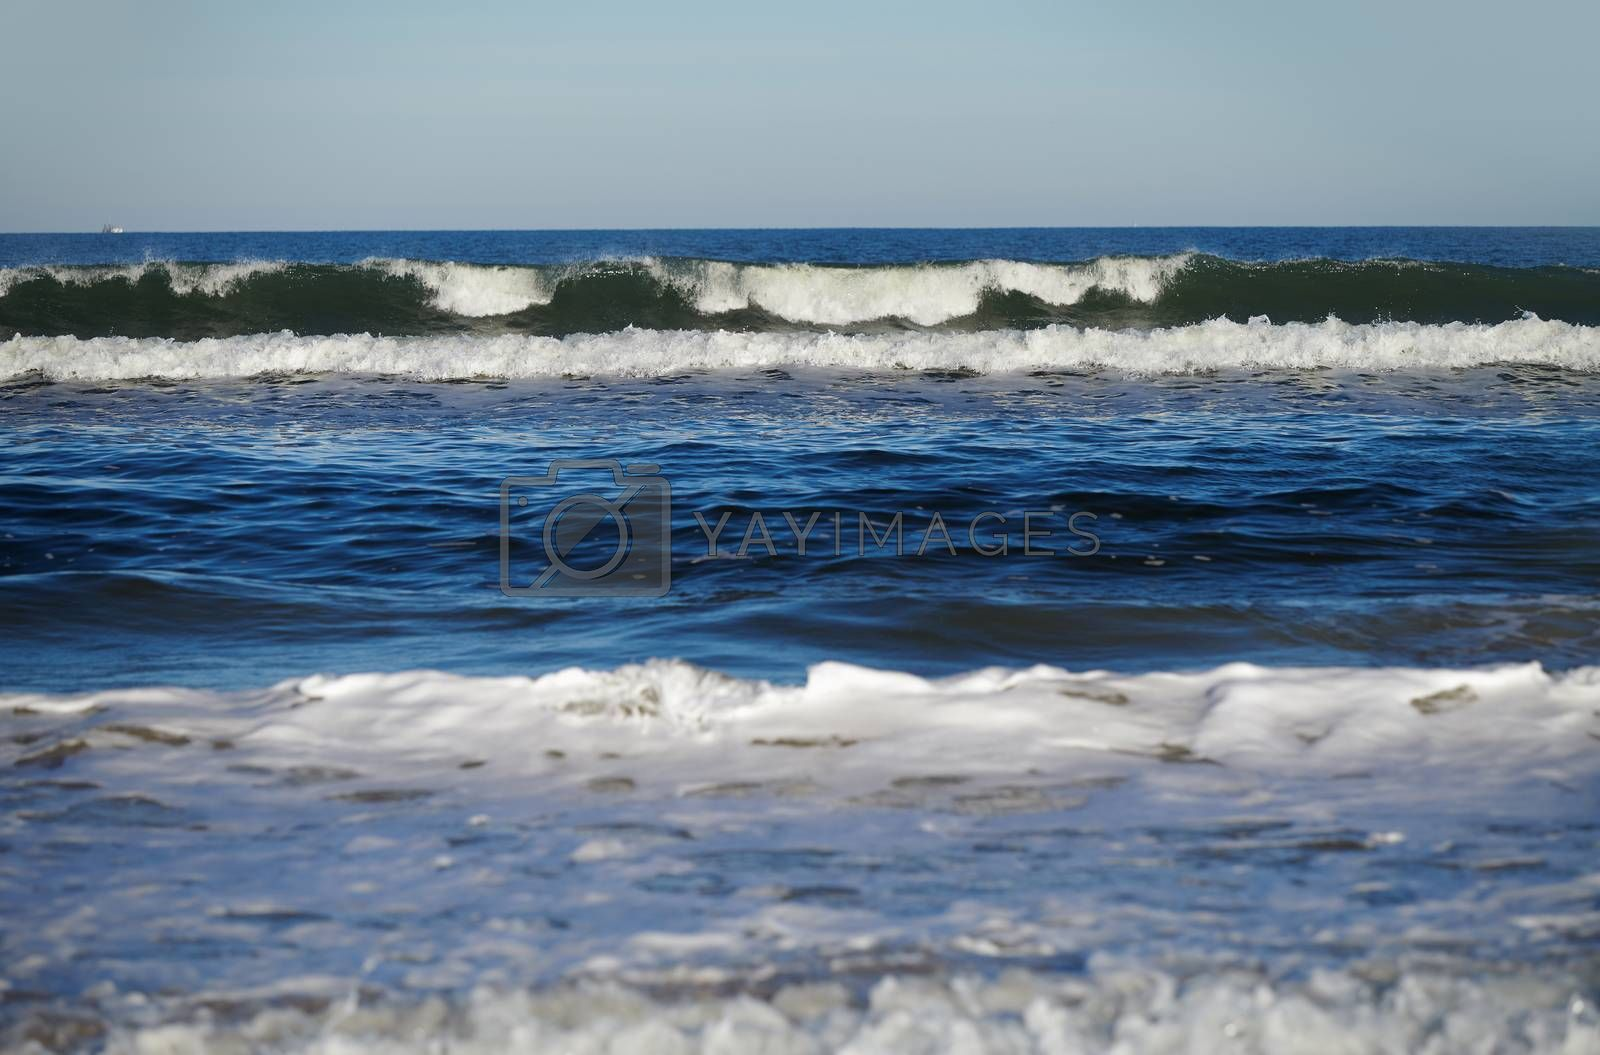 Rough water and waves in Atlantic Ocean. Florida, USA